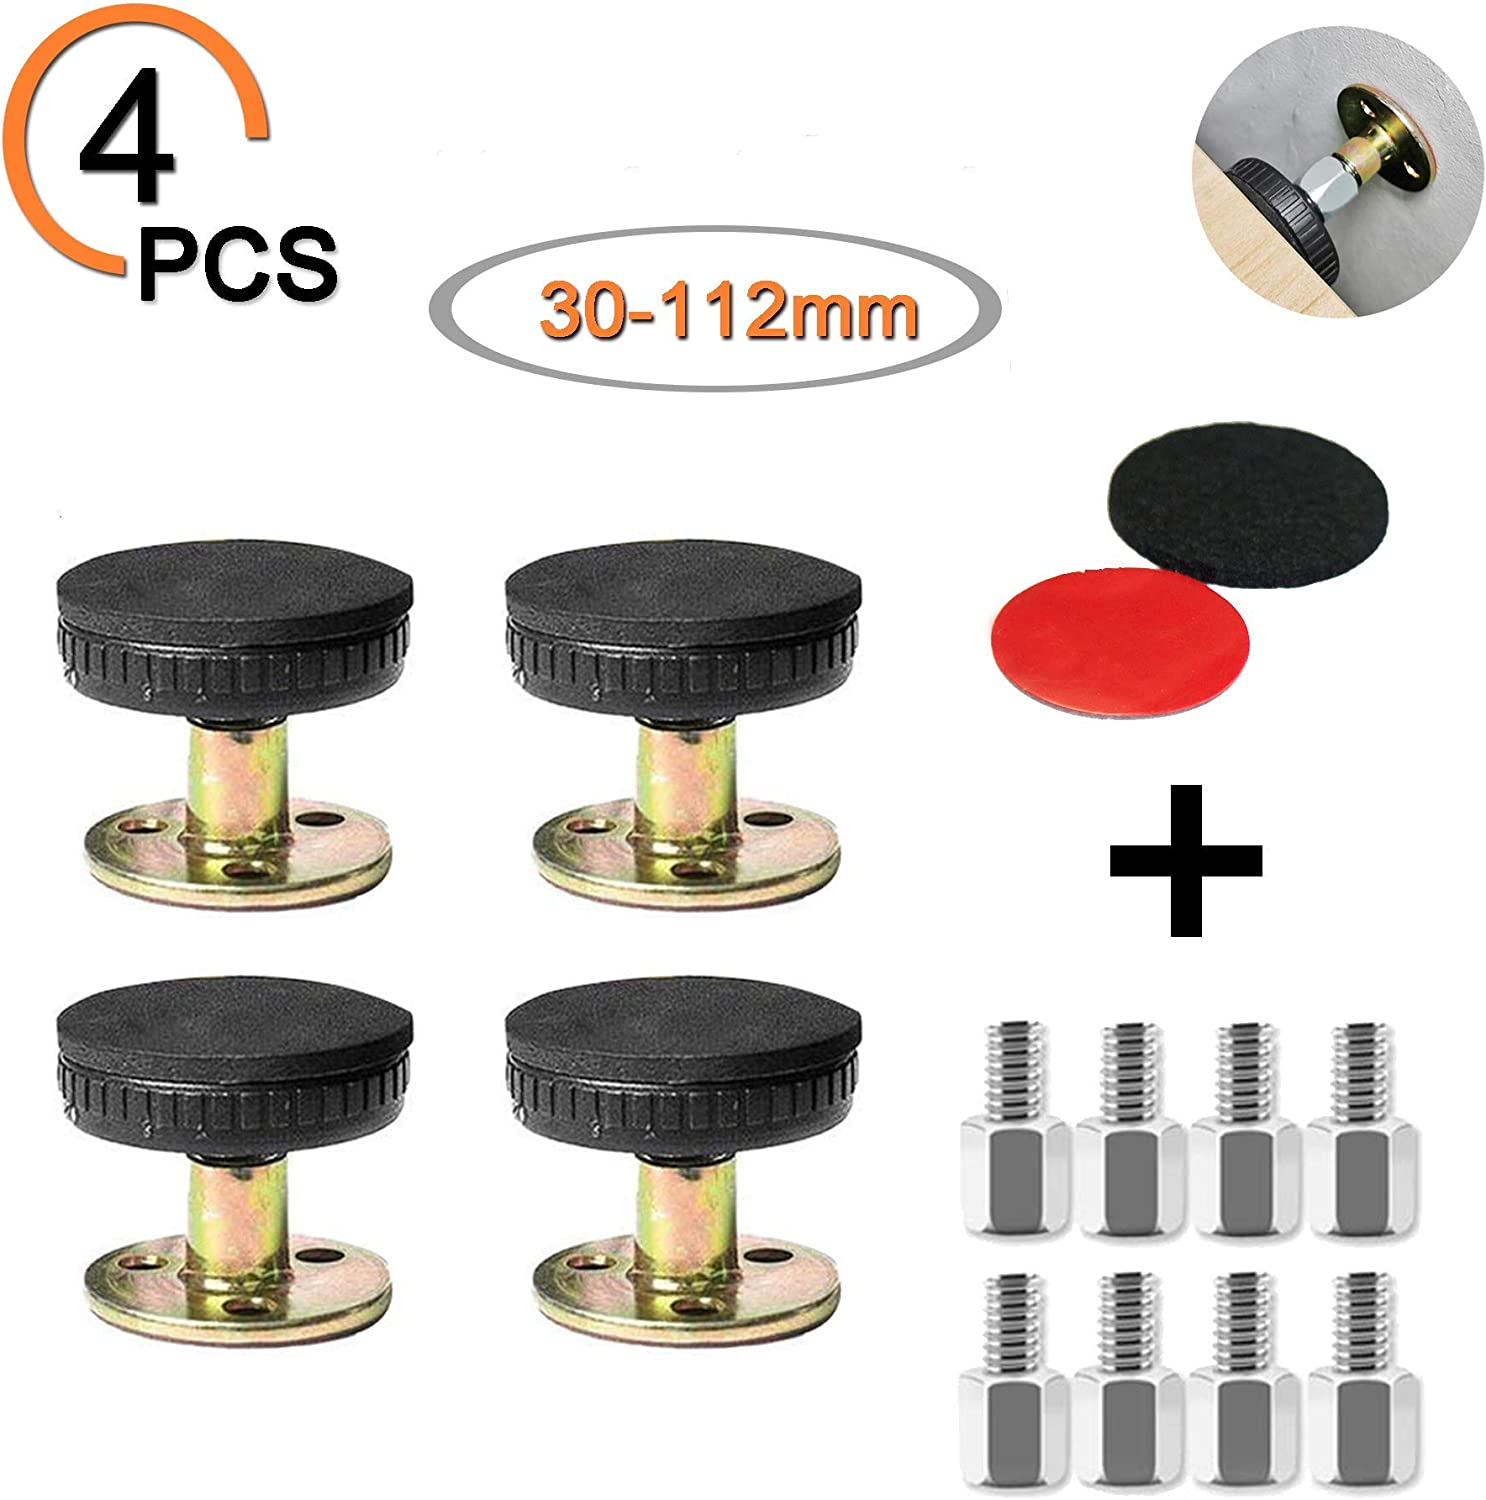 4pack,33-110mm Adjustable Threaded Bed Frame Anti-Shake Tool,Headboard Stoppers Bedside Headboards Prevent loosening Anti-Shake Fixer for Room Wall and Furniture Combination